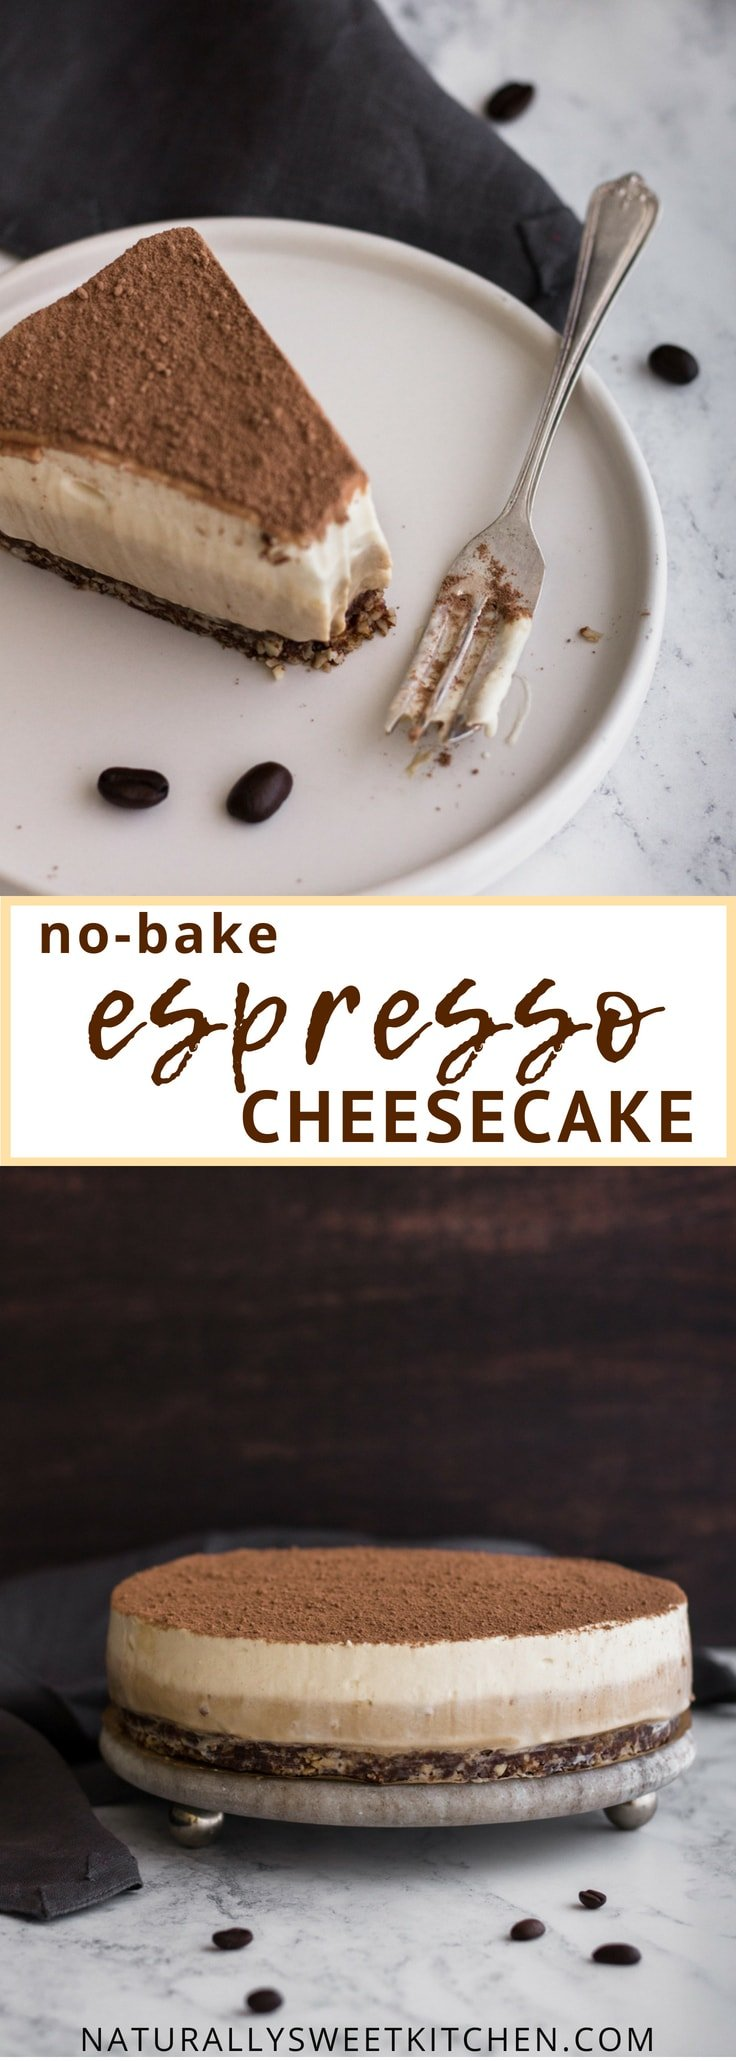 This no-bake espresso cheesecake with a raw chocolate almond crust is divinely light and simple. Naturally sweetened with maple syrup and dates, it will be the no-bake dessert you turn to time and time again. | Naturally Sweet Kitchen | Coffee dessert | Coffee cheesecake recipe | no-bake cake recipe | Refined sugar free #espressocheesecake #nobakedessert